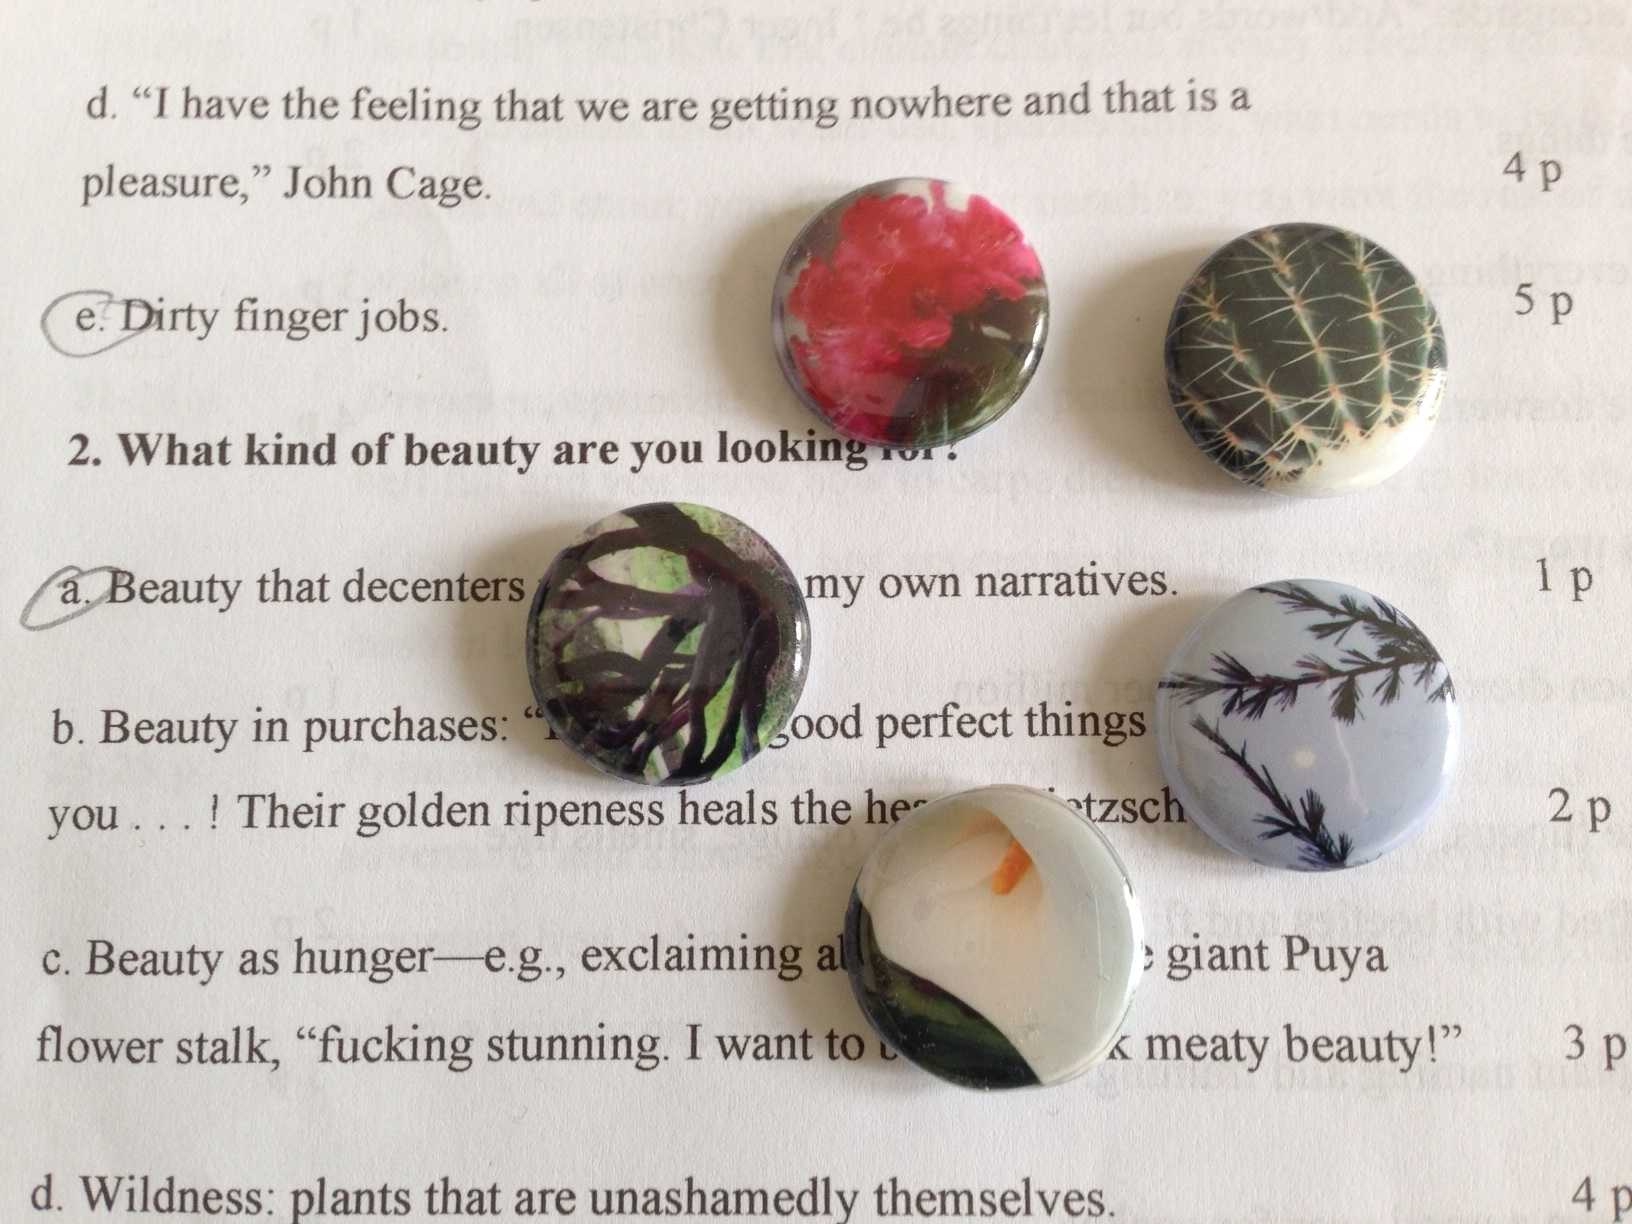 """At PsychoBOTANICA, more than 35 people completed our """"gumball"""" questionnaire: they began by choosing 7 words from a page of words (from the  Biotic Portal index, A-F), then used those words to answer 7 questions about their affiliation with nature, counted the points allotted to each answer and checked their gumball—our improvised list of nature affiliations (playful, wildlife protector, activist, dreamer/activist, primordialist) inspired by E. O. Wilson's study of biophilic relations in his  Biophilia Hypothosis . Participants picked up a button that matched their affiliation, and some answered our question about their first memory of a garden. Here are their answers, preceded by the 7 words they chose.    Aberration/airflow/barn owl boxes/cheese sandwiches/damask rose/Dutchman's pipevine/first memory of a garden:  Rusty metal staircase. The smell of pigeon shit and fig leaves. Rot.    Asters/bees/blue/ chaos/cork oak/dawn/fire:  My grandfather's garden —marigolds, tomatoes, cucumbers, grass. On my hands and knees, lowing like a cow, eating grass, trying to find a four-leaf clover. Never did.    Arrow bamboo/bats/blue/borrowed views/chain fern/dispersal/eye-to-eye:  Eating too many raw green beans and sitting under vine holding tummy. Then walking home on red cinder road. — Diana    Arcadia/bees/California fuchsia/creek/elephants in the room/endangered/feral:  Running through a gorgeous green English garden with my sister, pretending to be fairies. She had a natural trilling whistle, the perfect fairy sound. —Liz    Arousal/belly plants/California sagebrush/dirty finger jobs/ecstatic/euphorbia/feral:  An expanse of dicondra, room to run and roll and stand on my head and clamber over railroad ties and under agaves and between scotch broom (smell them) and up a eucalyptus tree and feel it sway with me. —Rebecca    Arcadia/bats/birds/chaos/death/documented/effusion:    Watching snails in calla lilies, putting them in a box, watching them escape. Climbing an oak tree. """